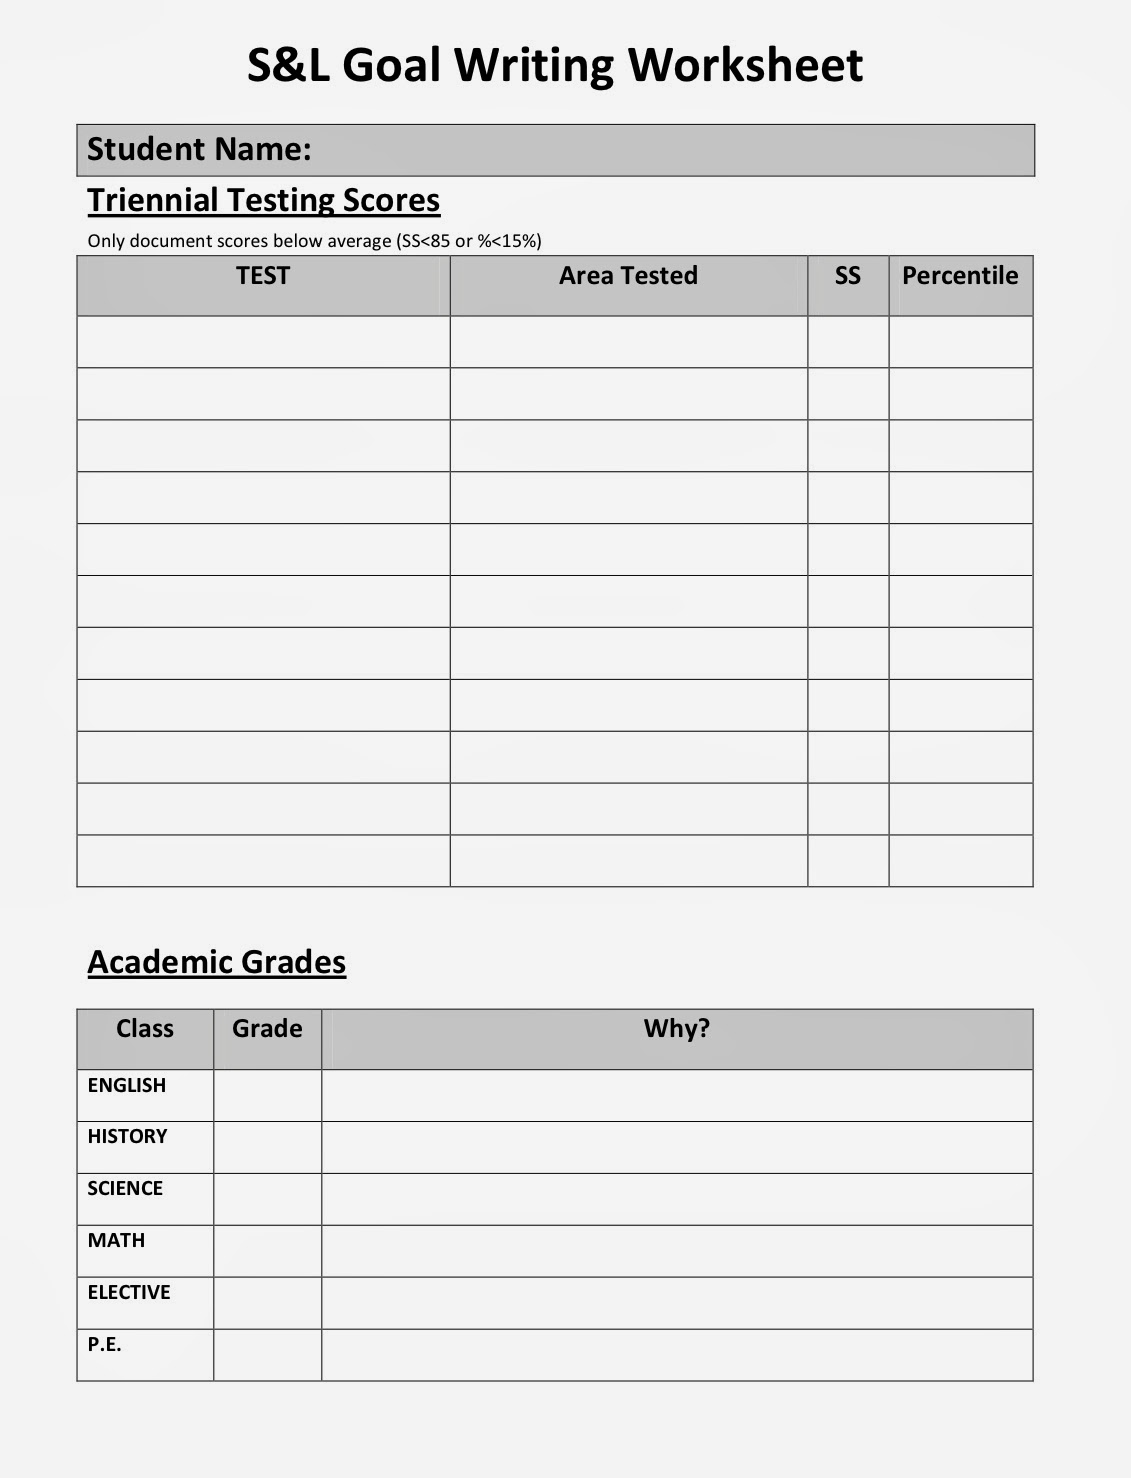 Goal Writing Worksheet 1 1 131 1 478 Pixels